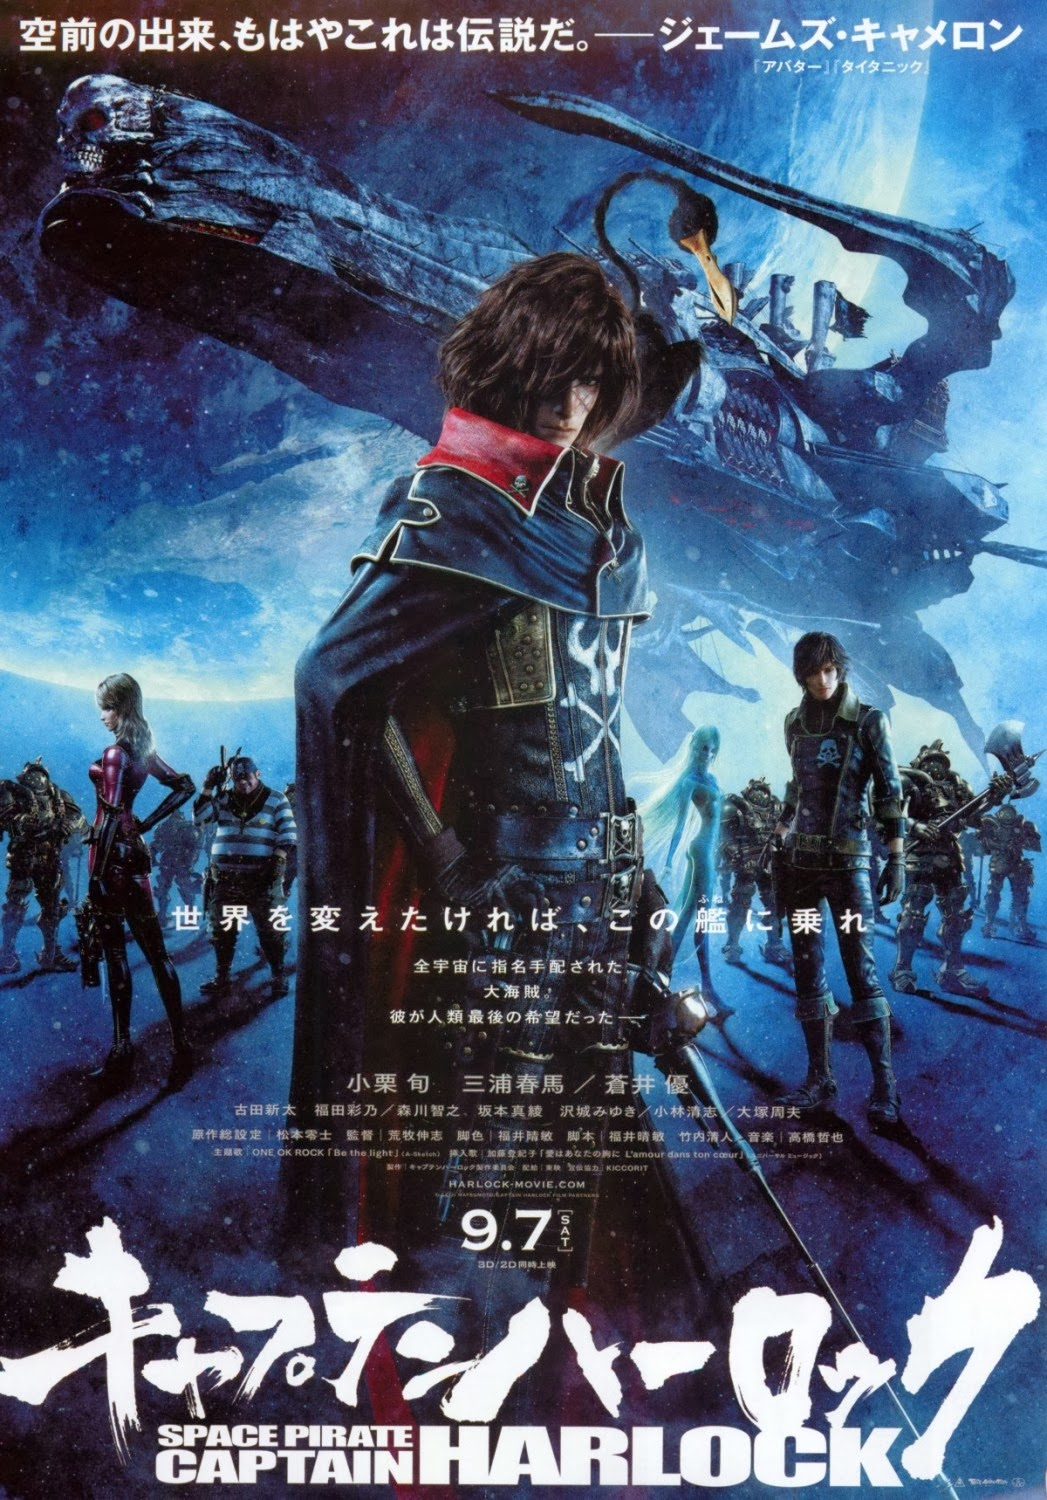 Assistir Online Space Pirate Captain Harlock Dublado Filme Link Direto Torrent